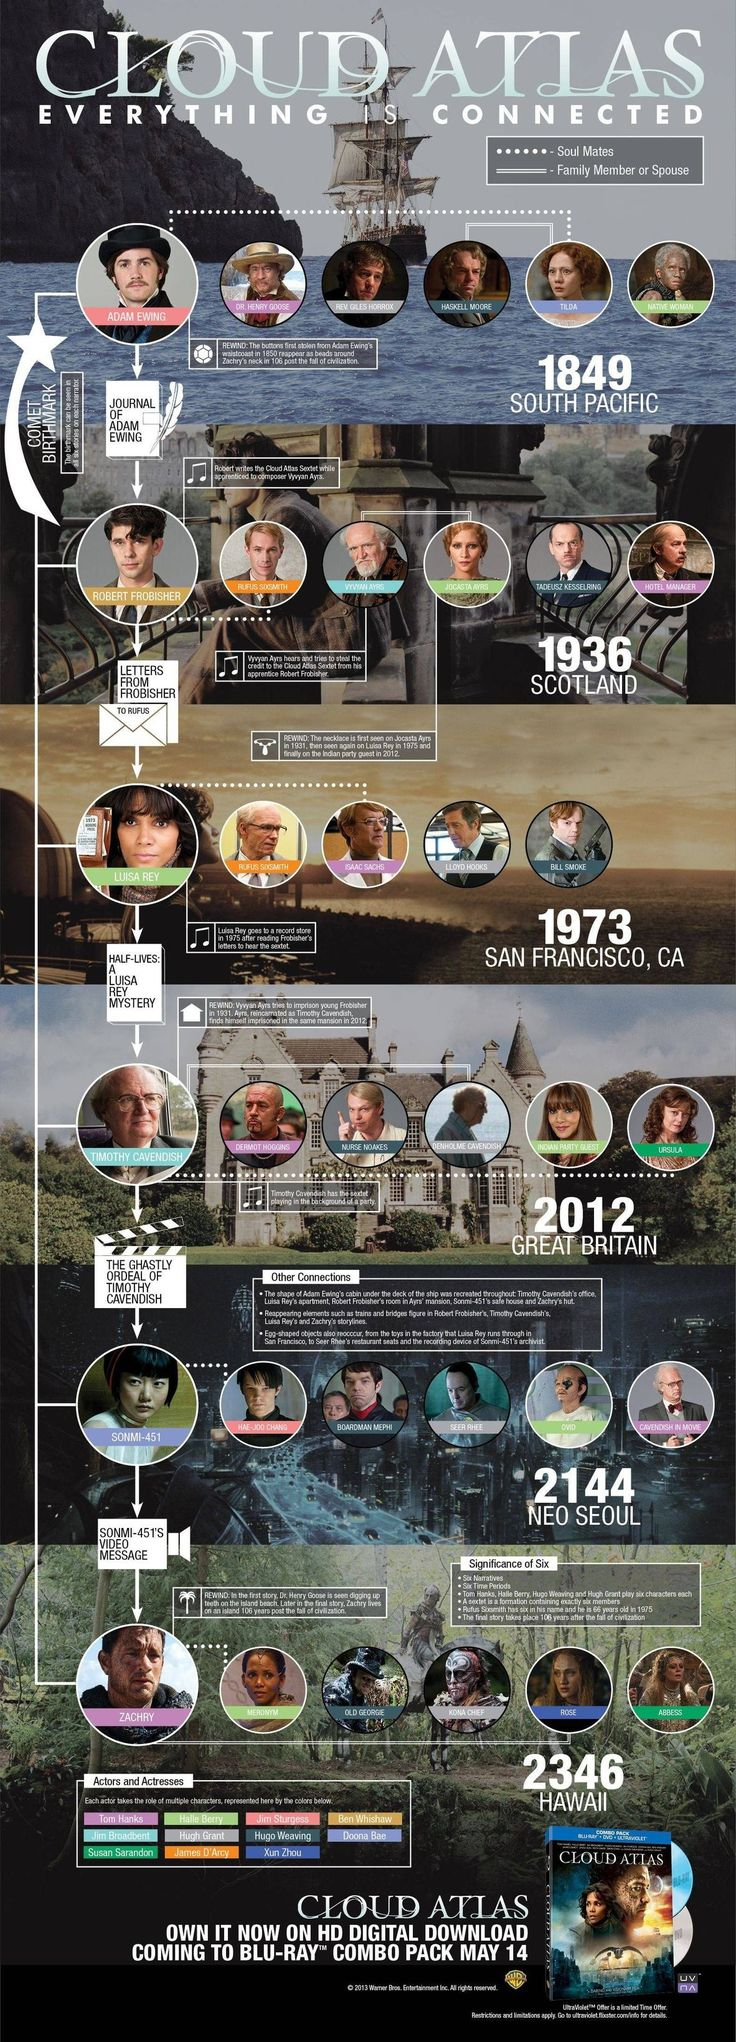 El atlas de las nubes/Cloud Atlas (Wachowsky Bros) Cloud Atlas storyline connection graphic...